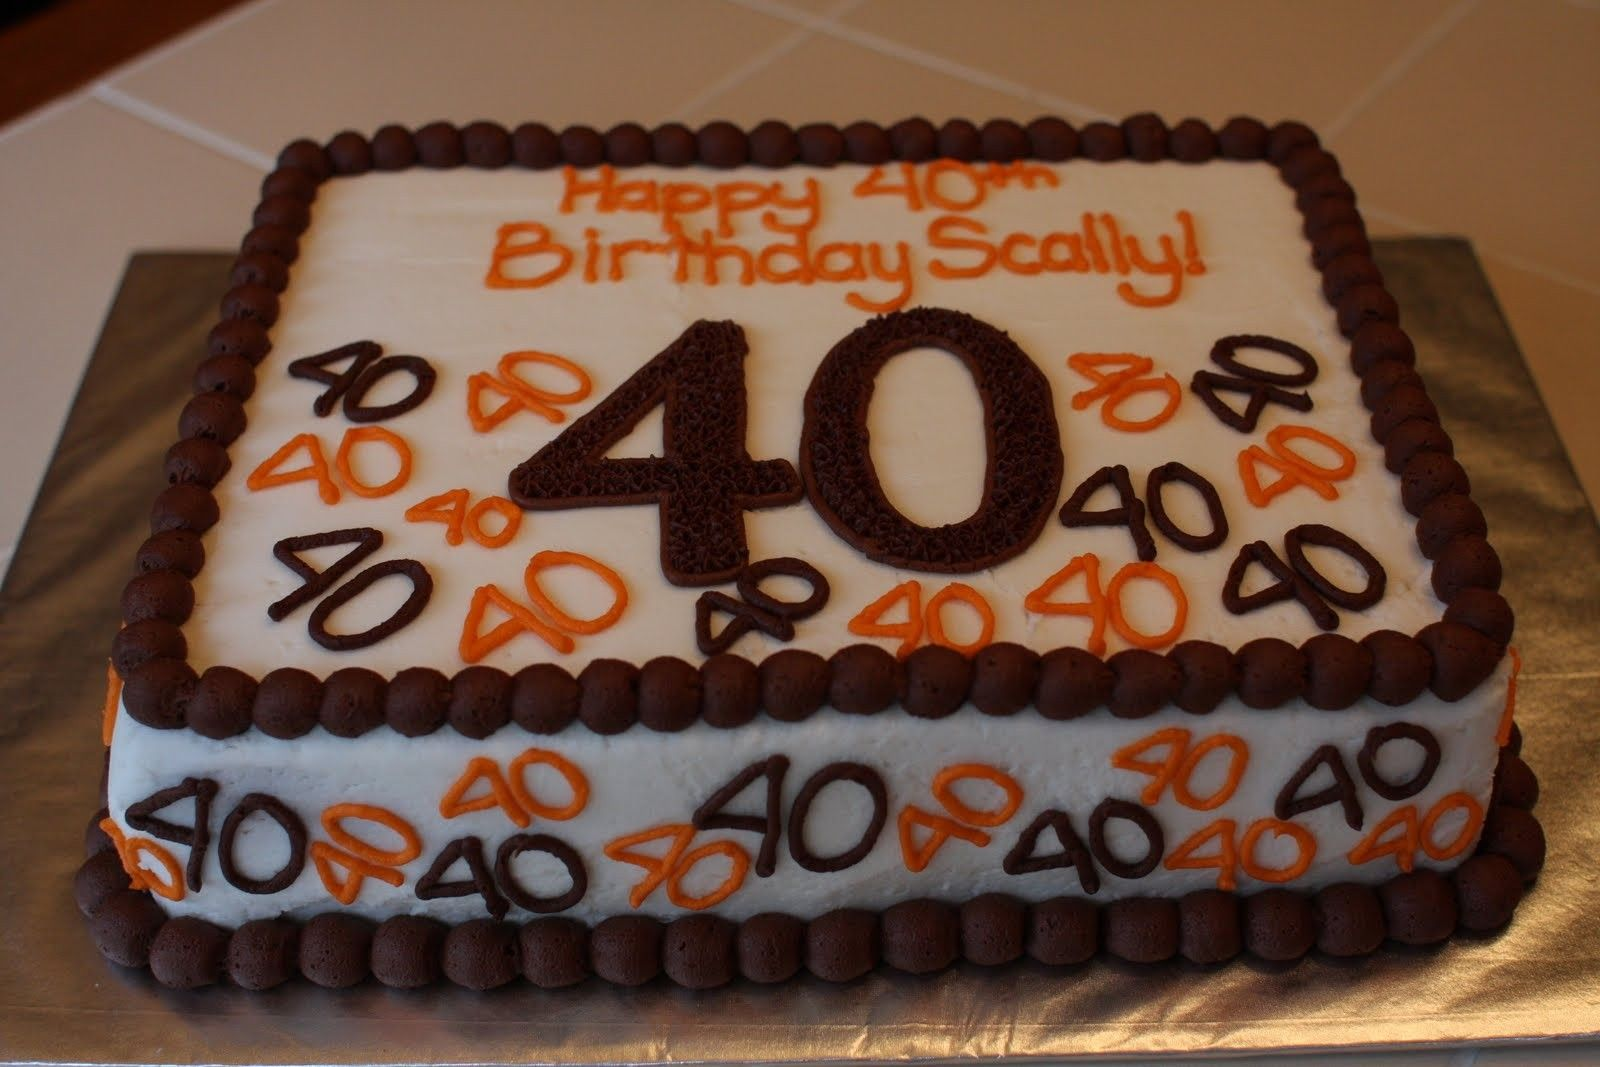 Cake 40th Birthday Cakes For Men Ideas Cake 40th Birthday Cakes